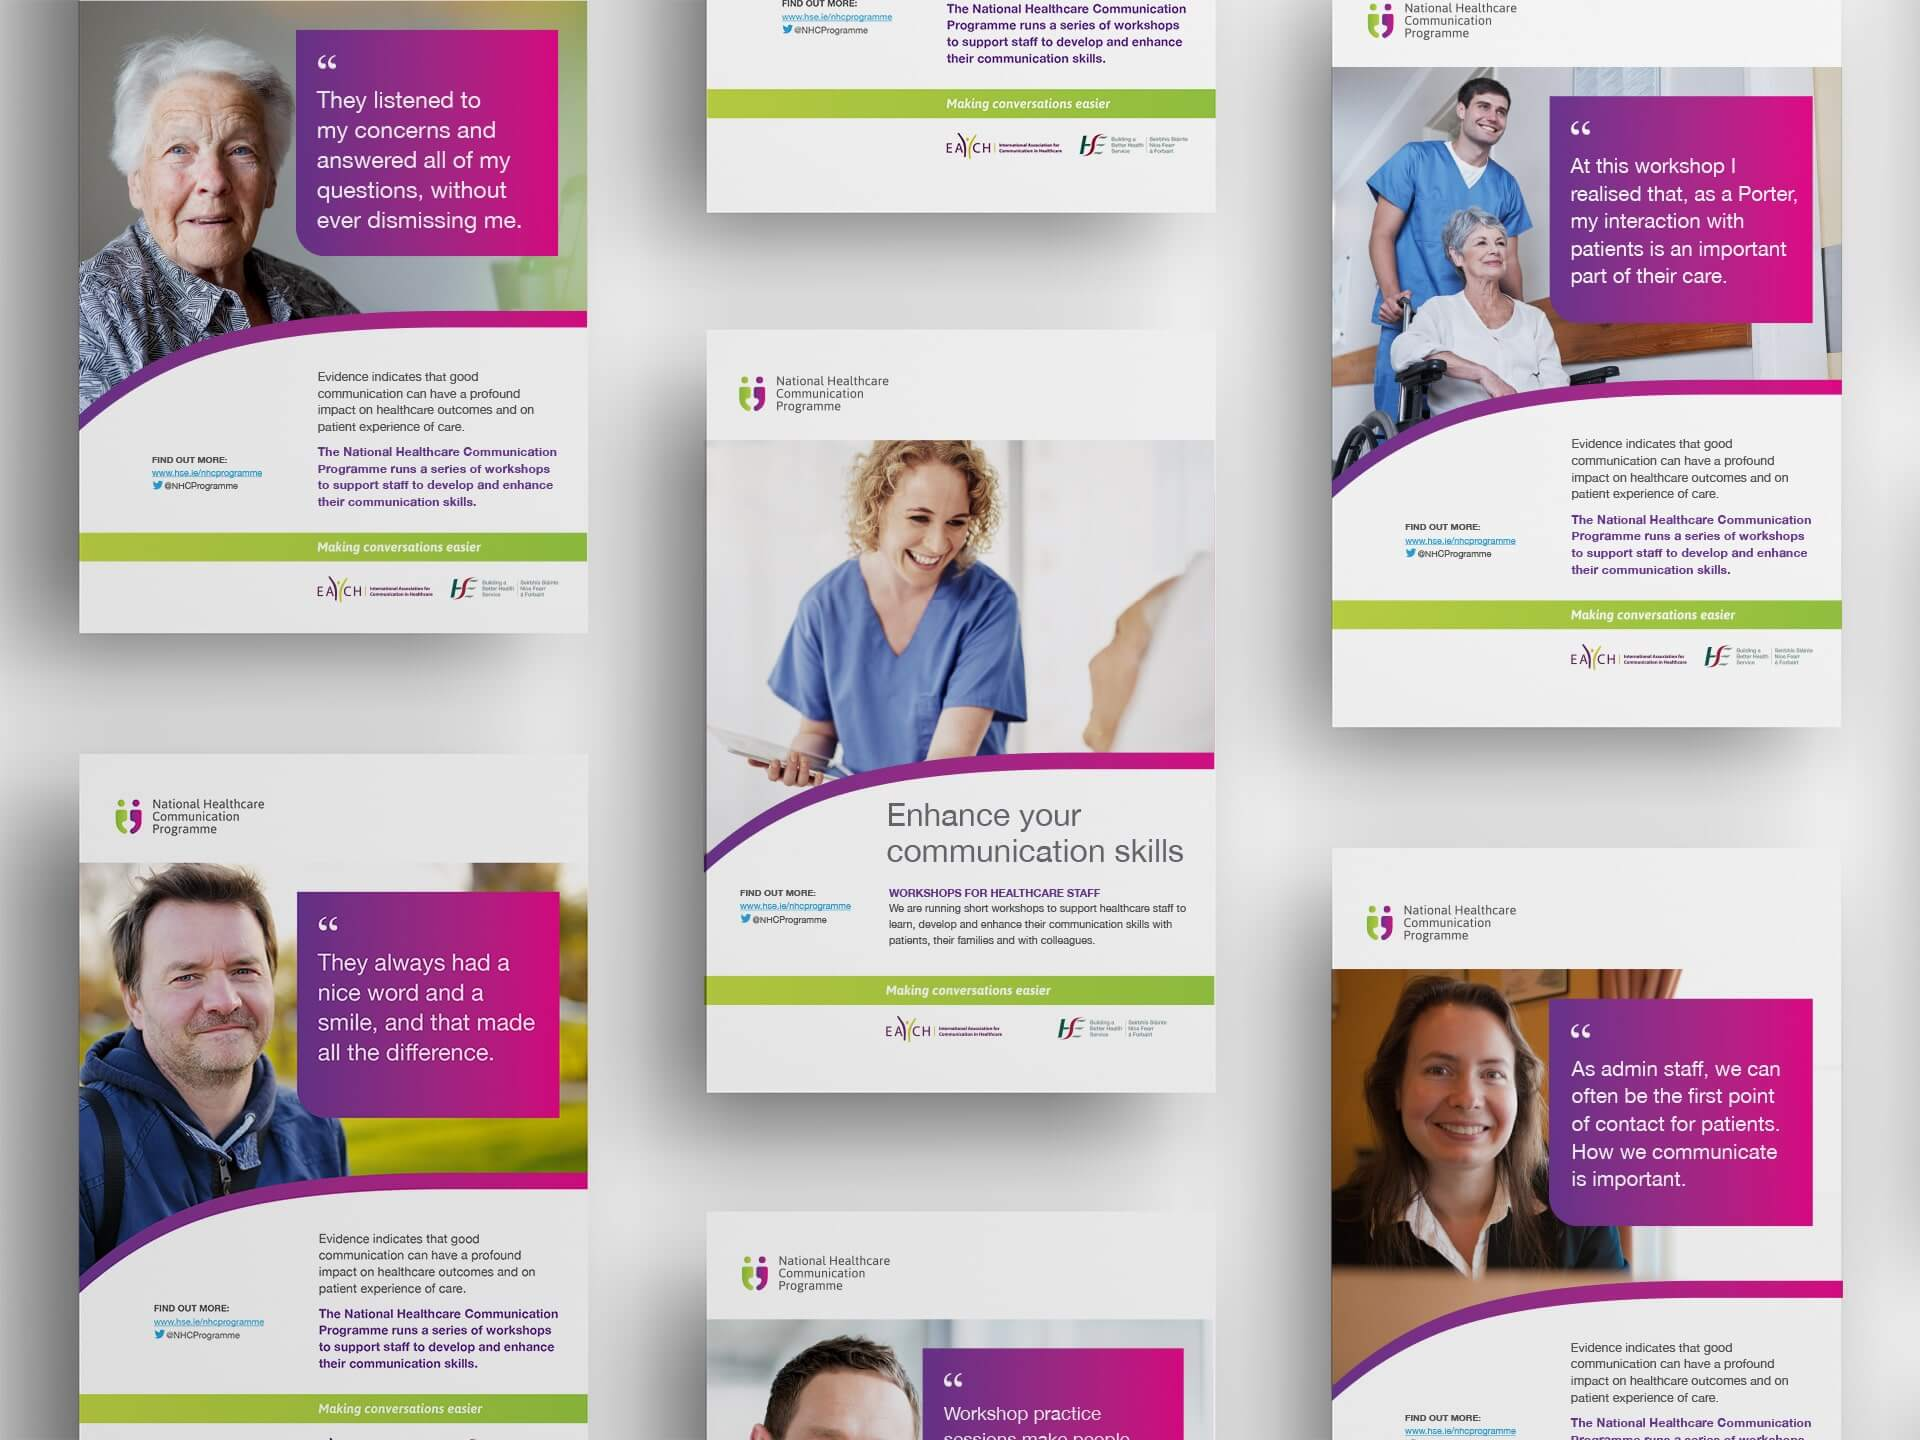 National Healthcare Communication Programme posters